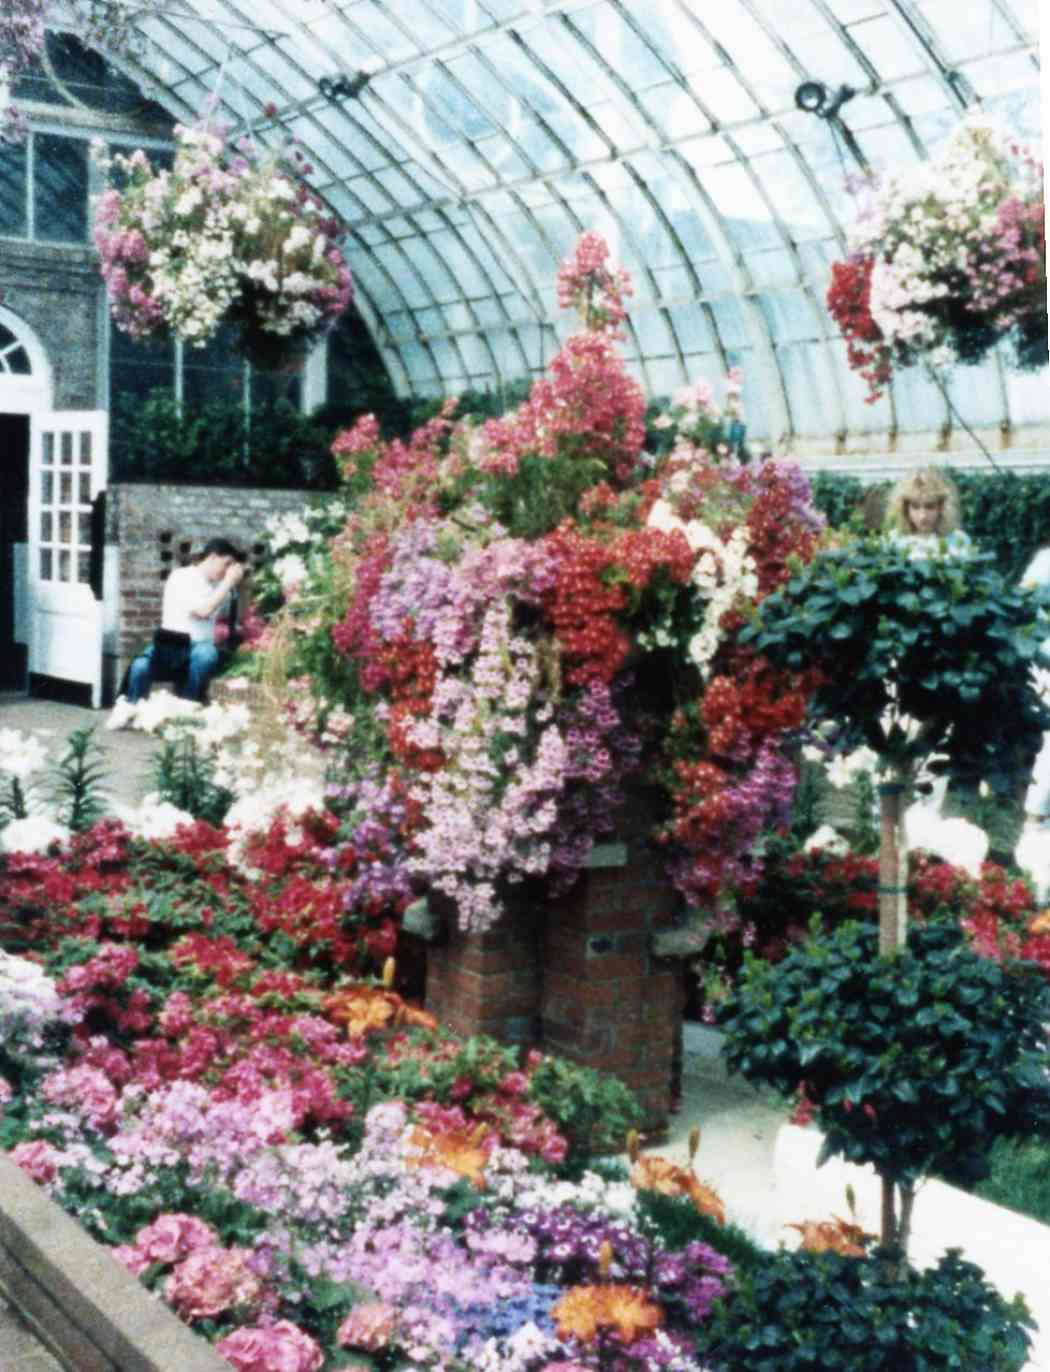 Spring Flower Show 1988: The Magic of Spring